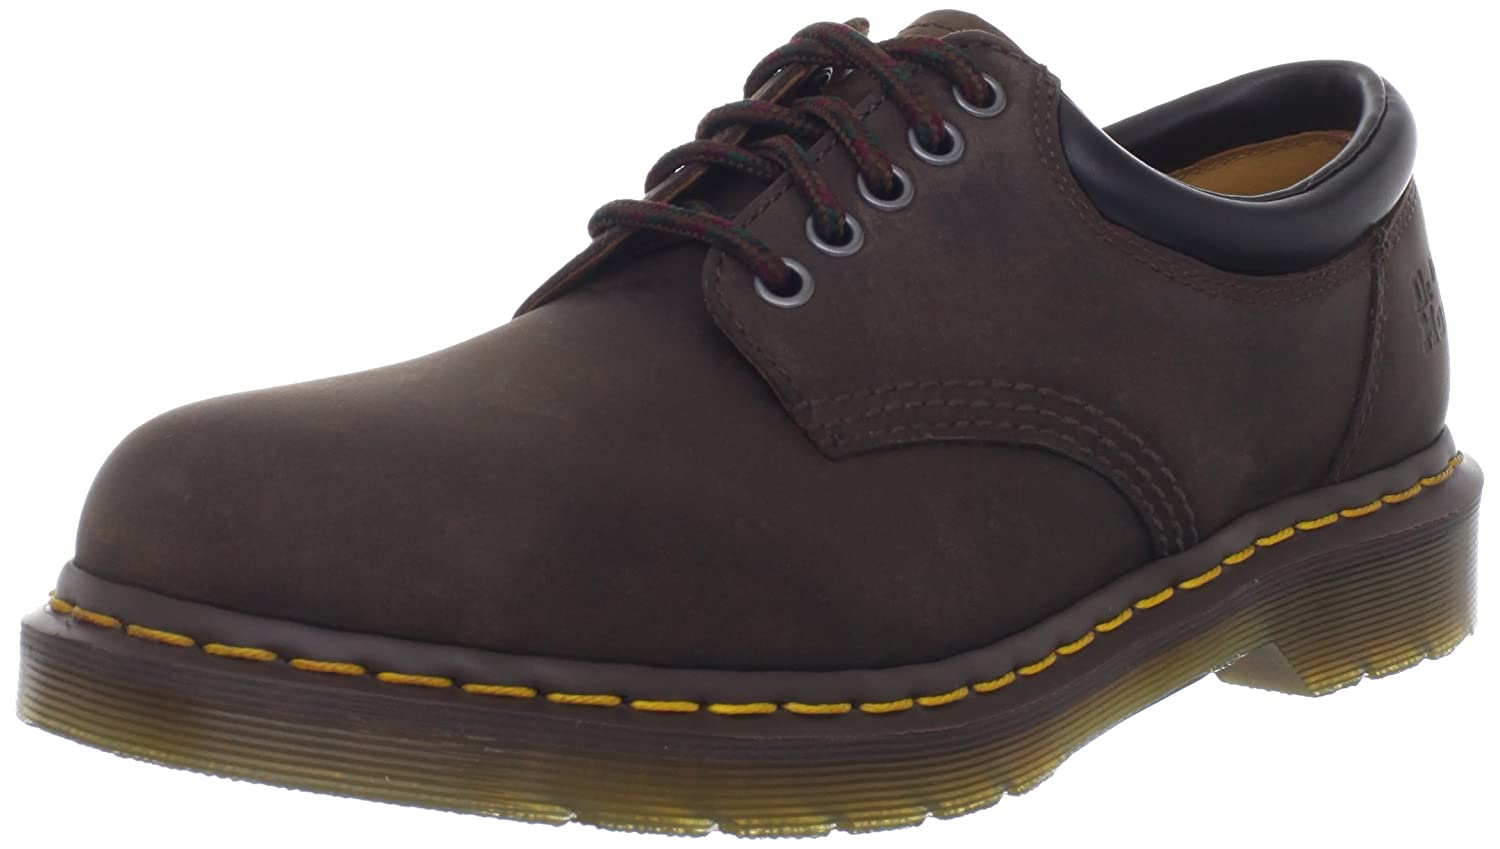 Dr. Martens unisex-adult 8053 5 Eye Padded Collar Boot B002HHSF1A 3 UK/Women's 5, Men's 4 M US|Gaucho Crazy Horse